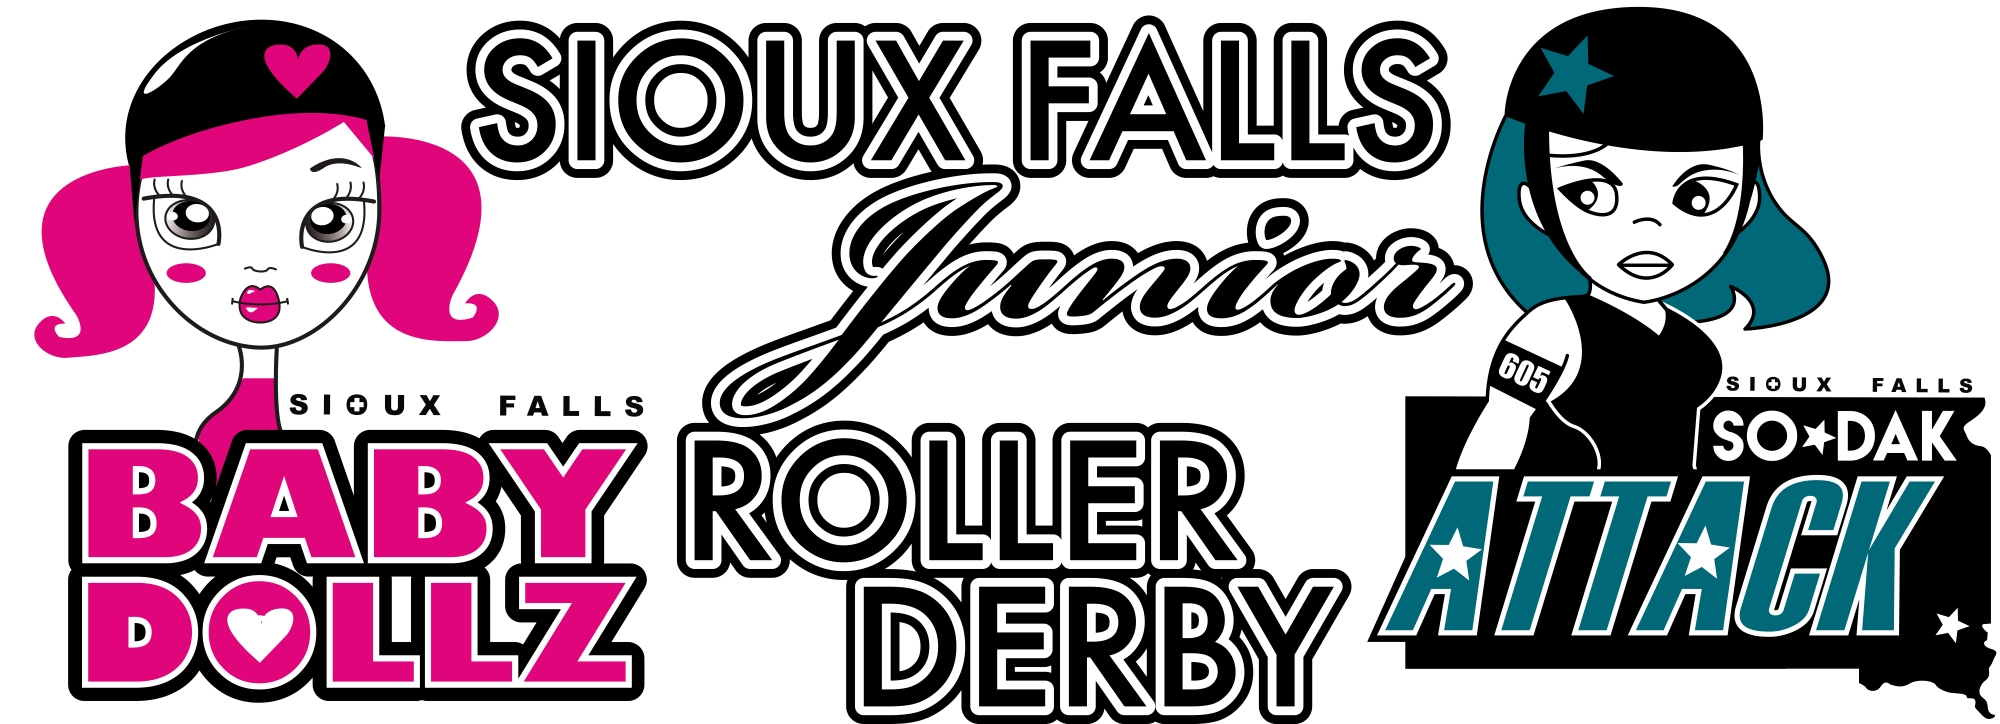 Sioux Falls Baby Dollz & SoDak Attack